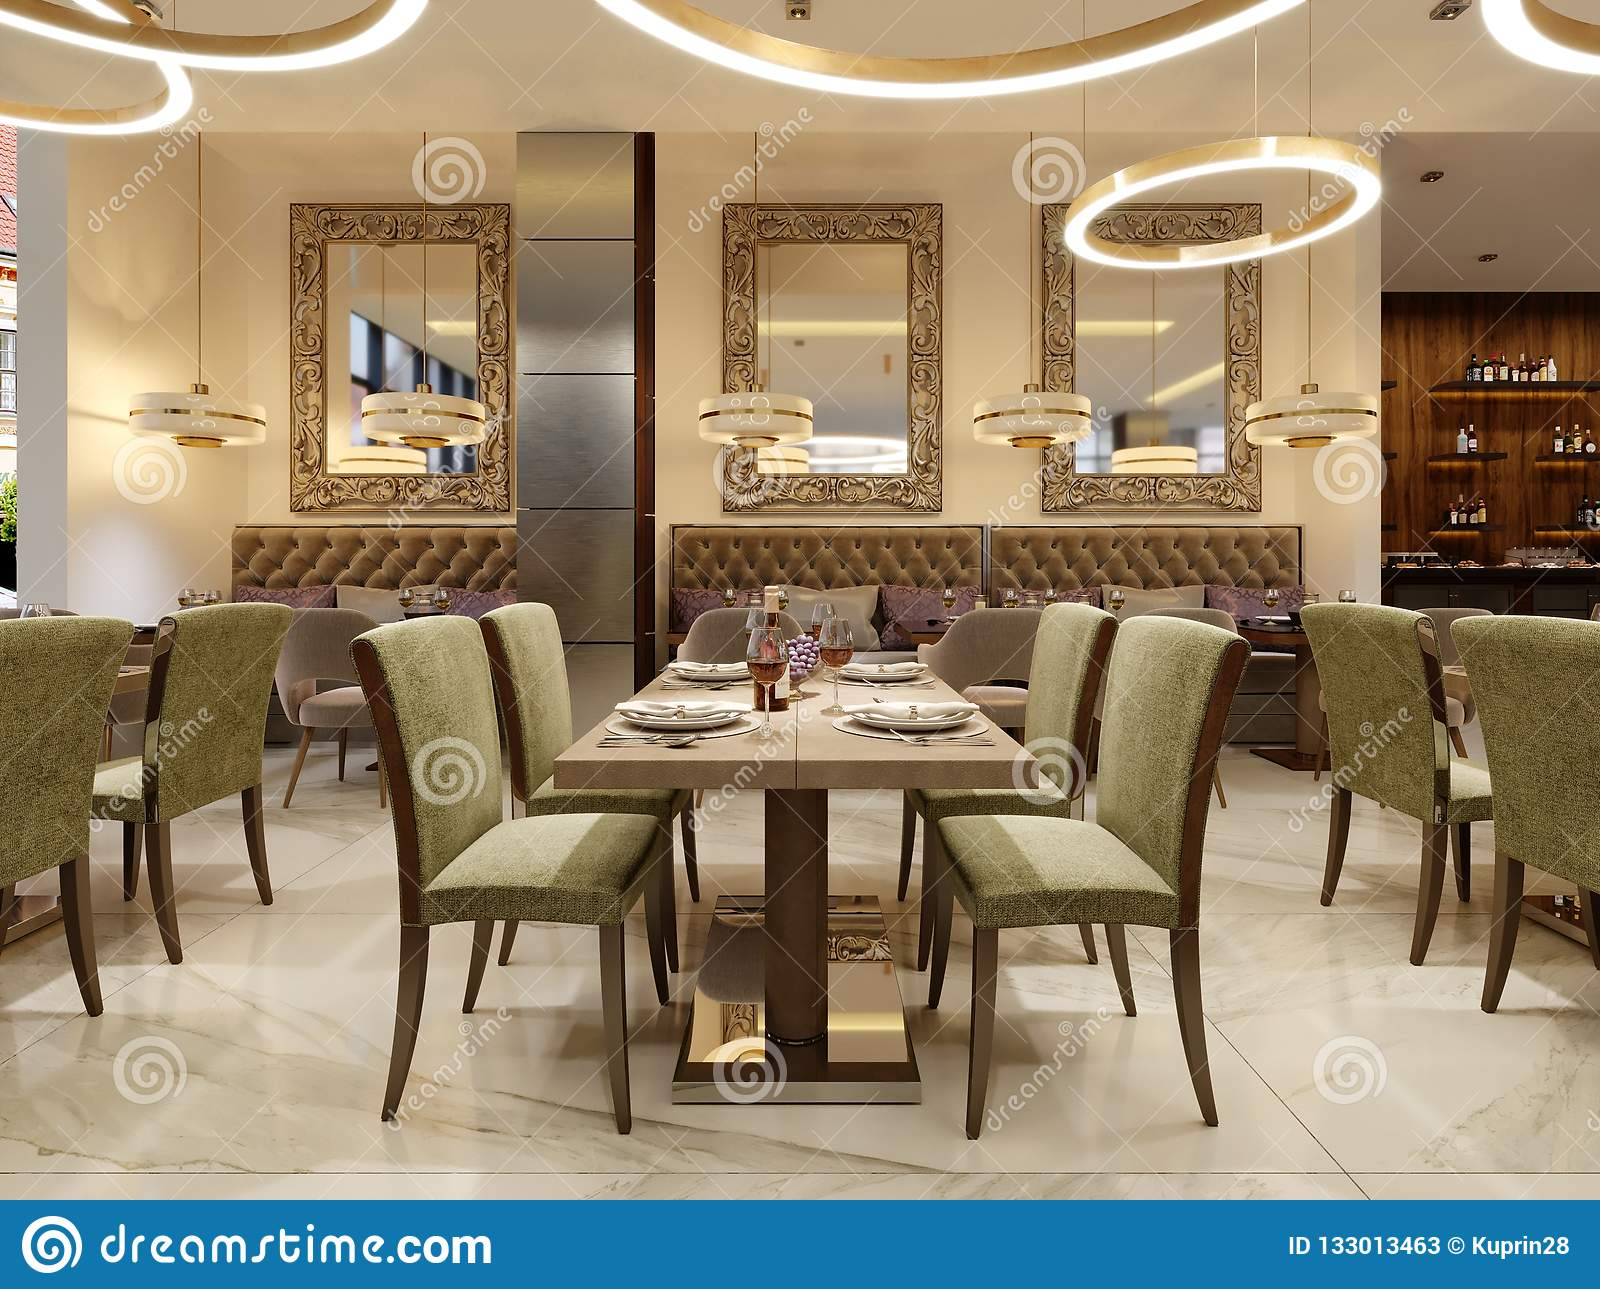 The Modern Conceptual Interior Design Of The Restaurant Is In Contemporary Style With Classic Elements Stock Illustration Illustration Of Decor Interior 133013463